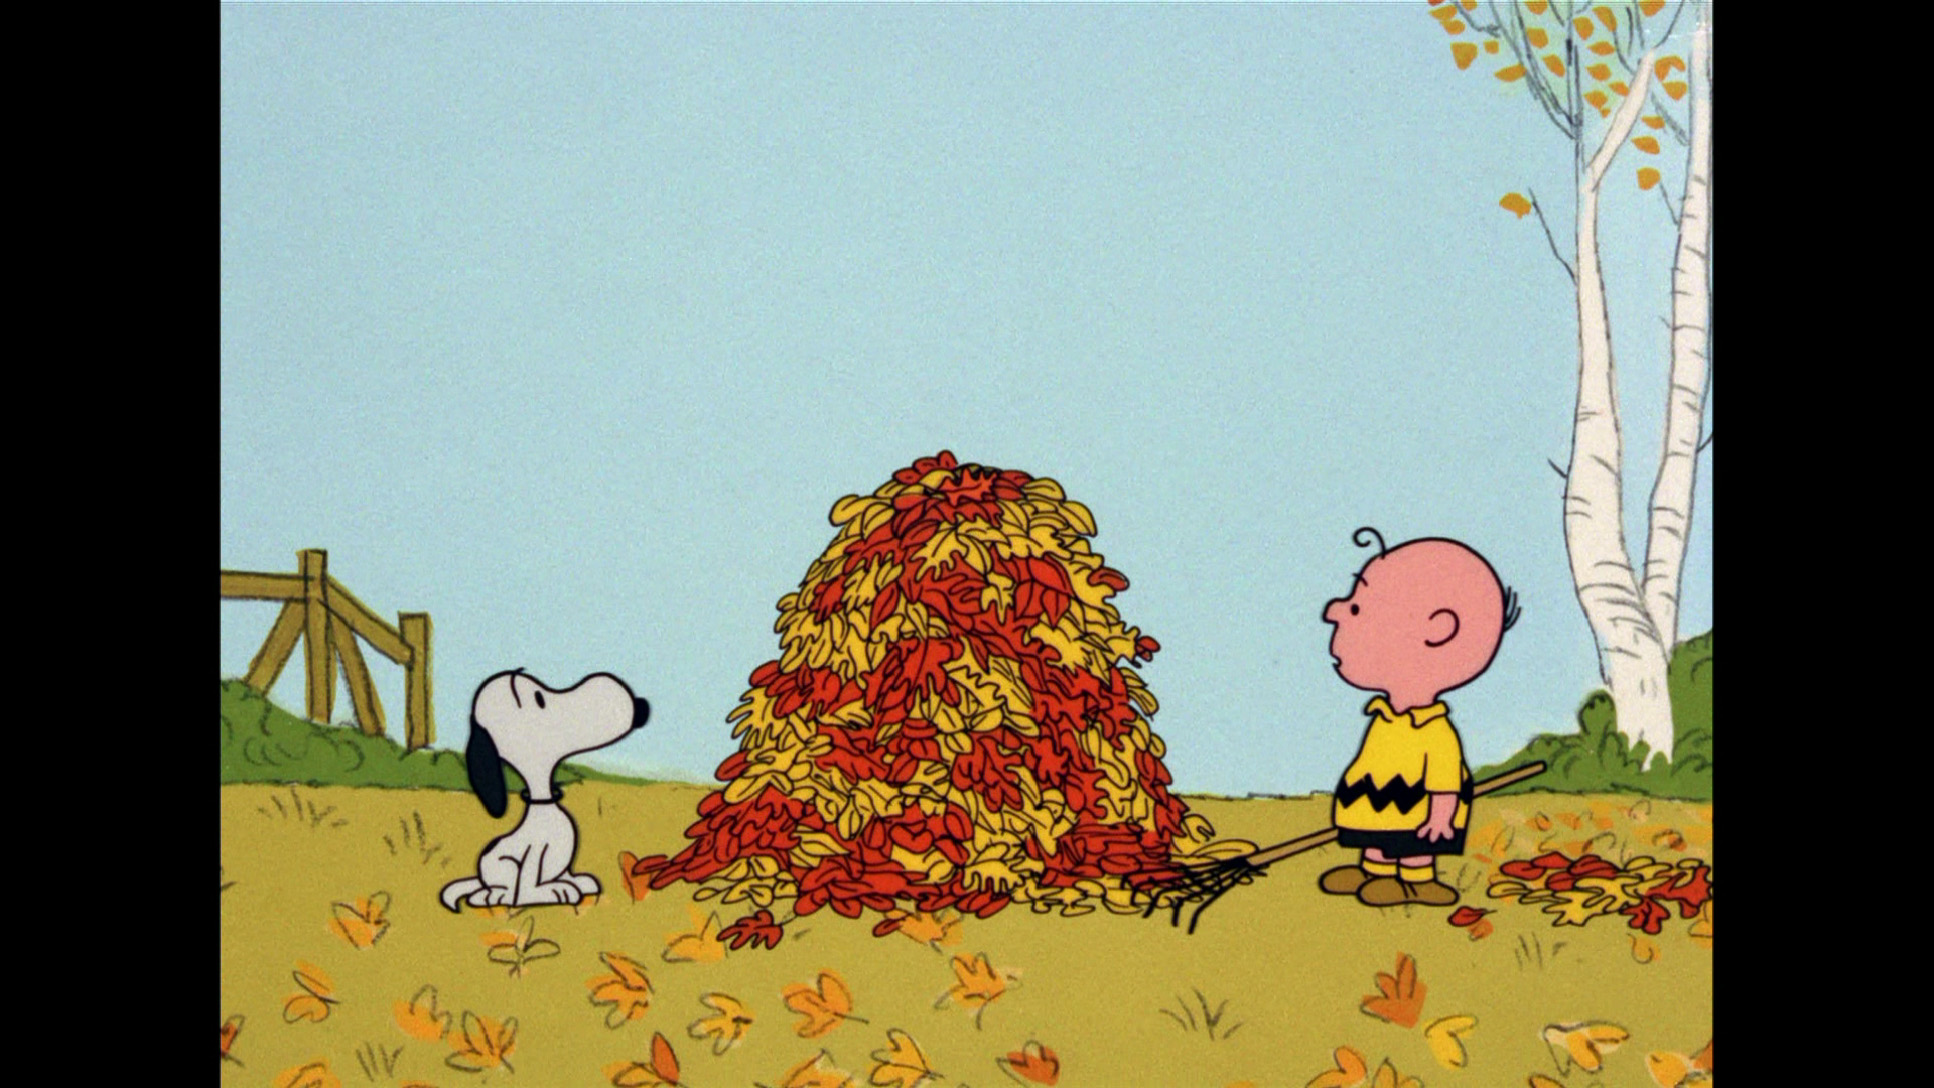 great pumpkin charlie brown wallpapers hd | page 2 of 3 | wallpaper.wiki